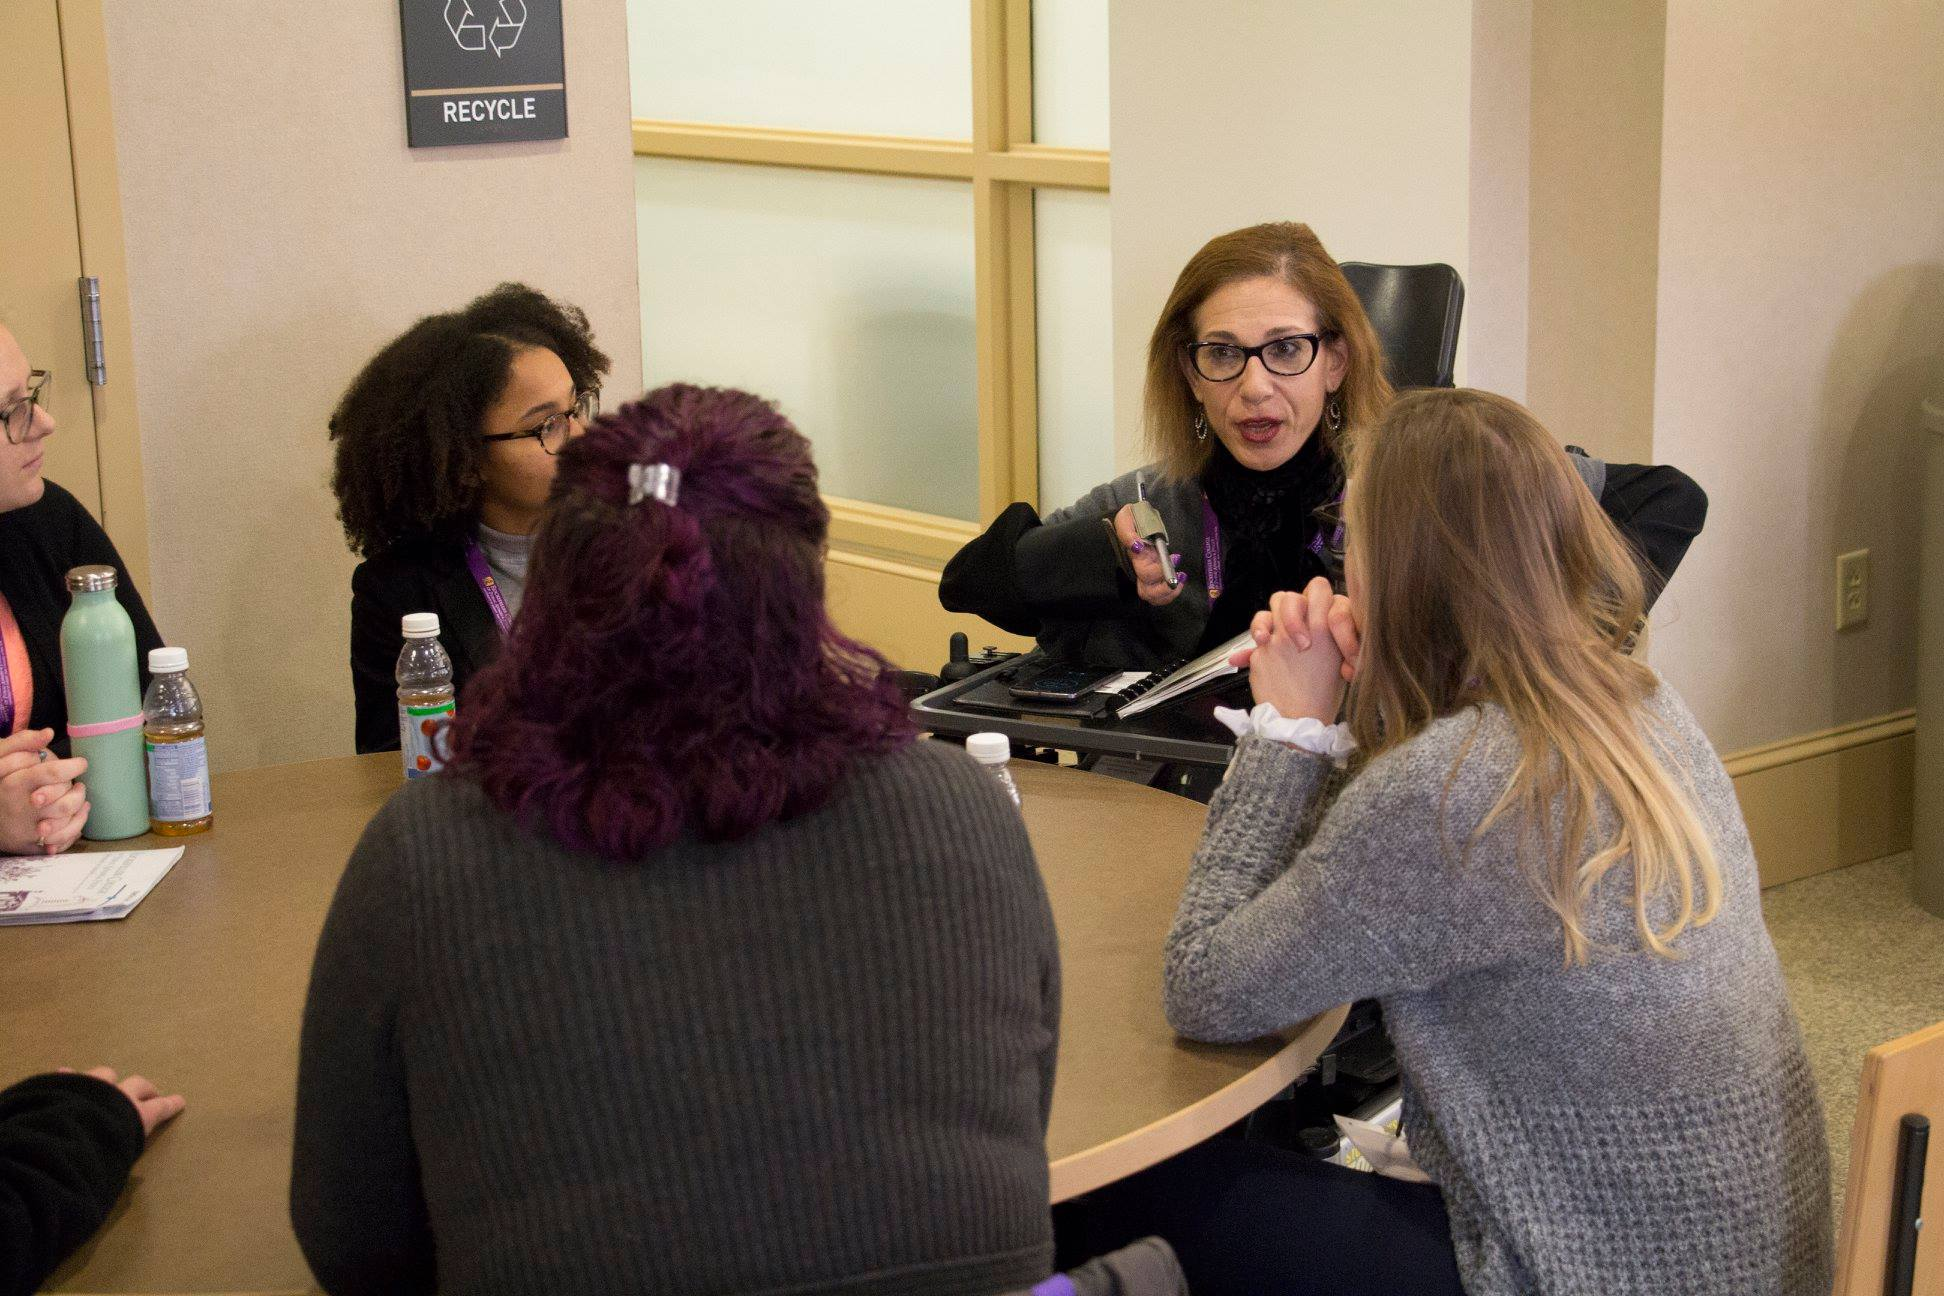 Sheri participating in a mentoring/networking session with students at the University of Albany, 11-18.